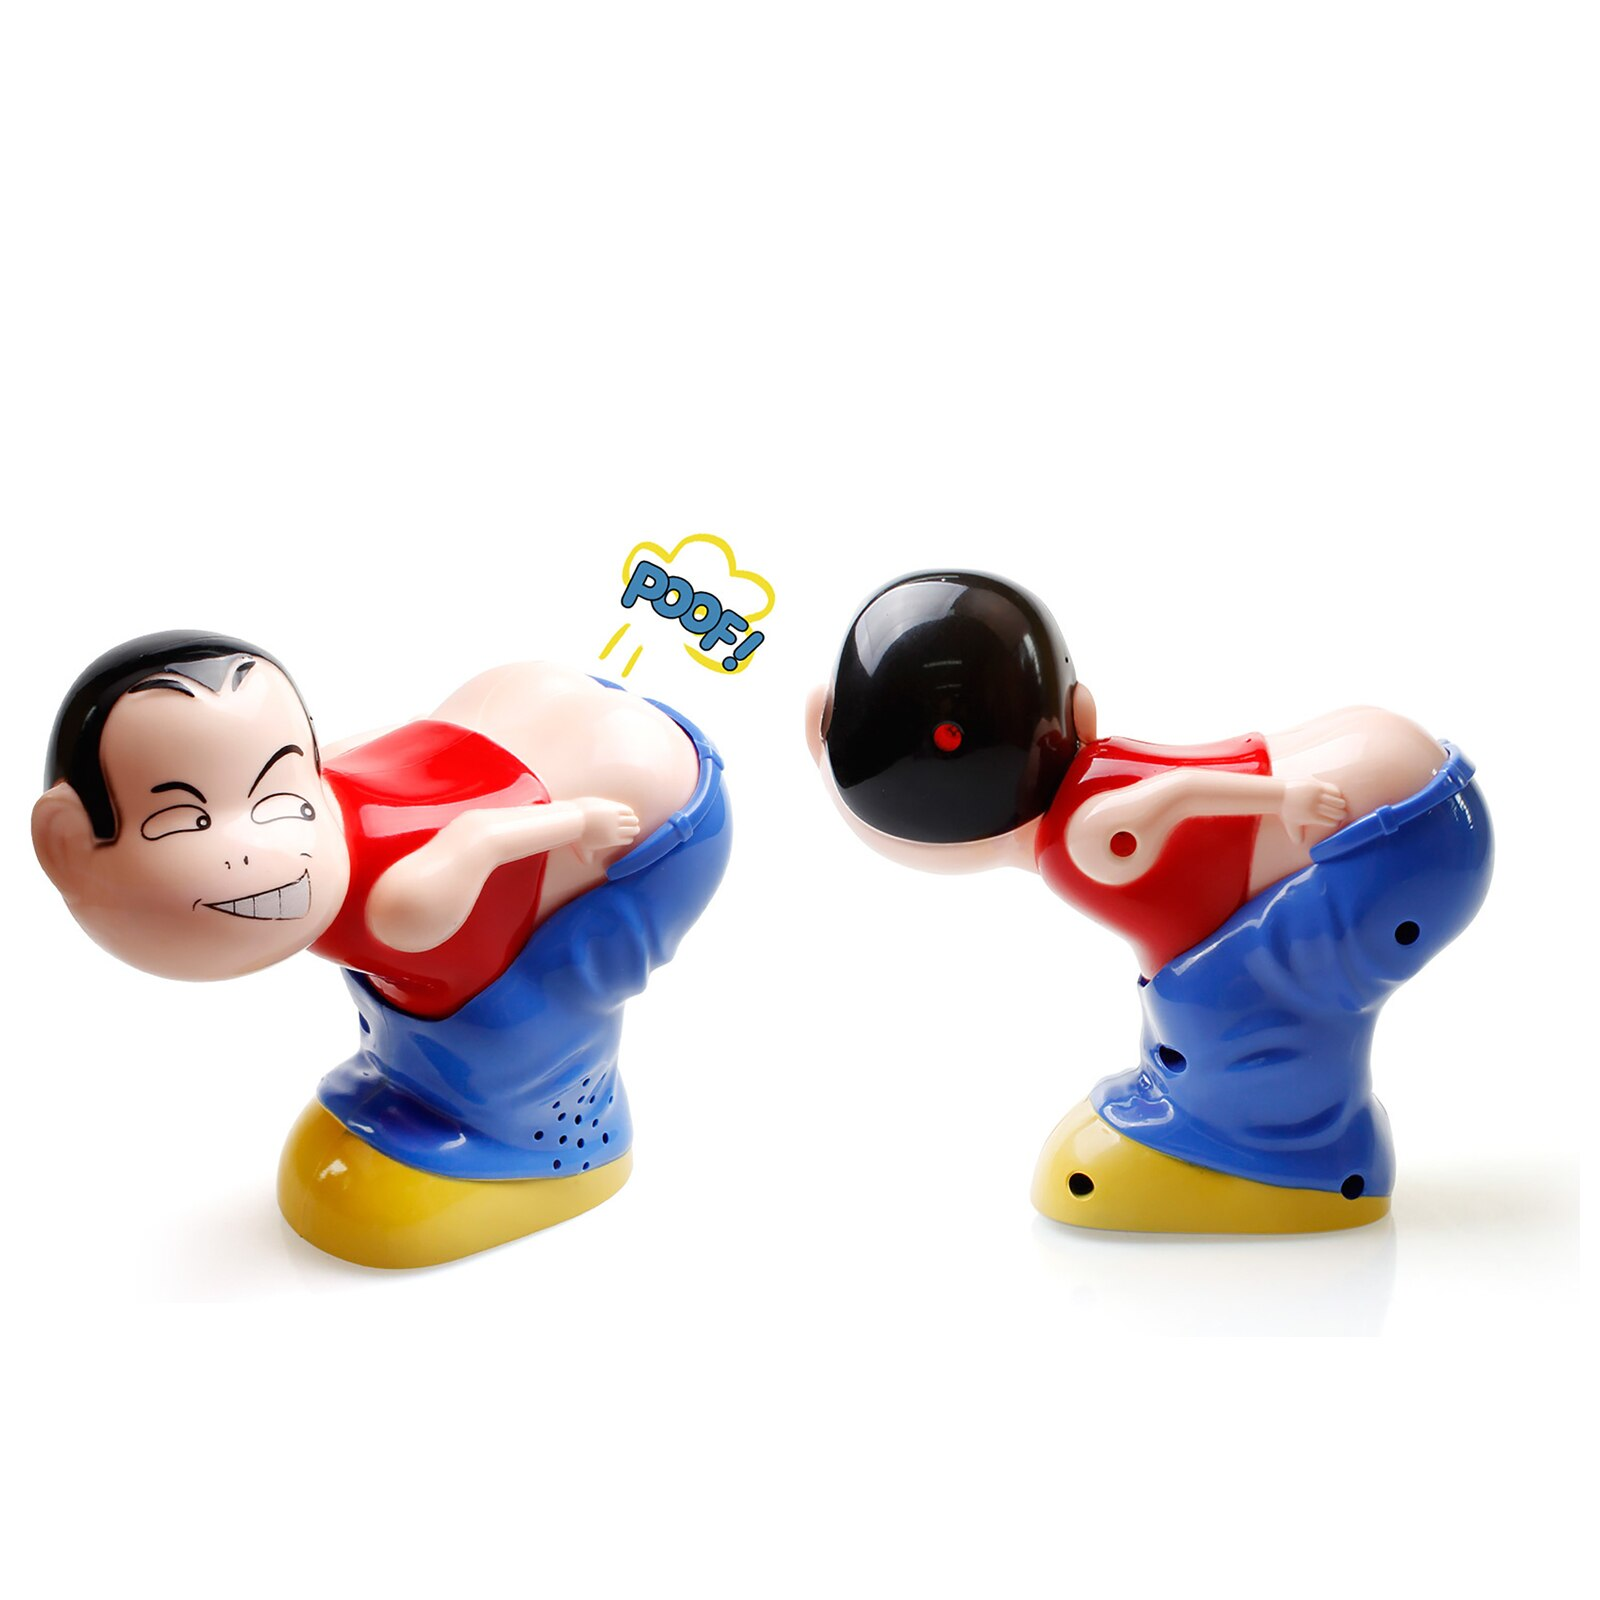 Farting Sounds toy Buy on Amazon and Aliexpress